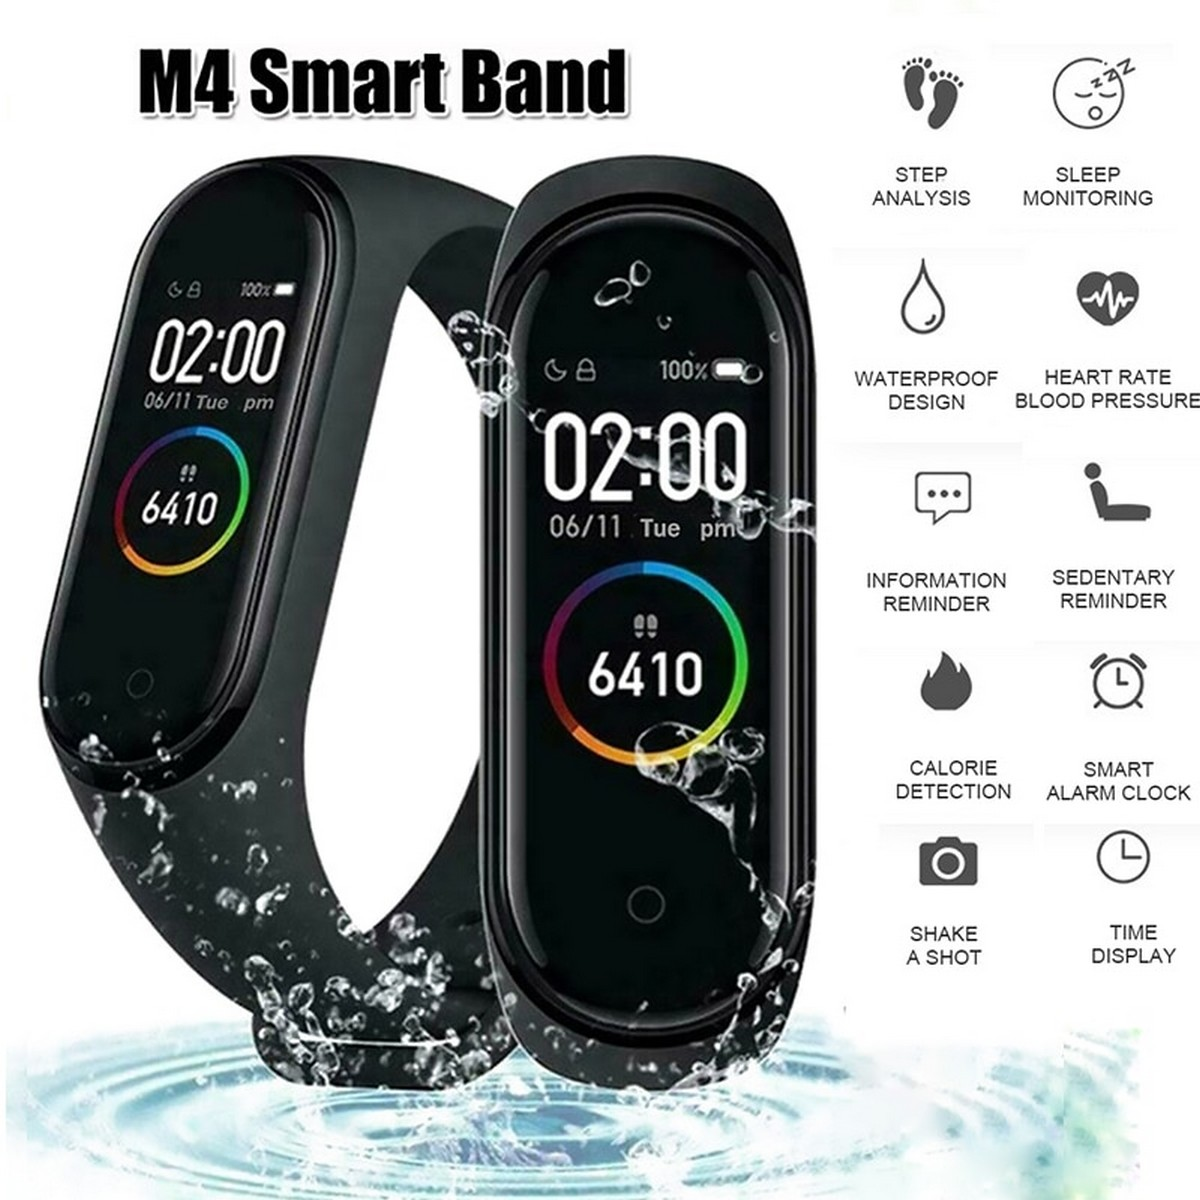 M4 Smart Band M4 Plus SmartBand Fitness Activity Tracker  Wrist Band Heart Rate Monitor Smart Watch For Men Women Android Smartwatch